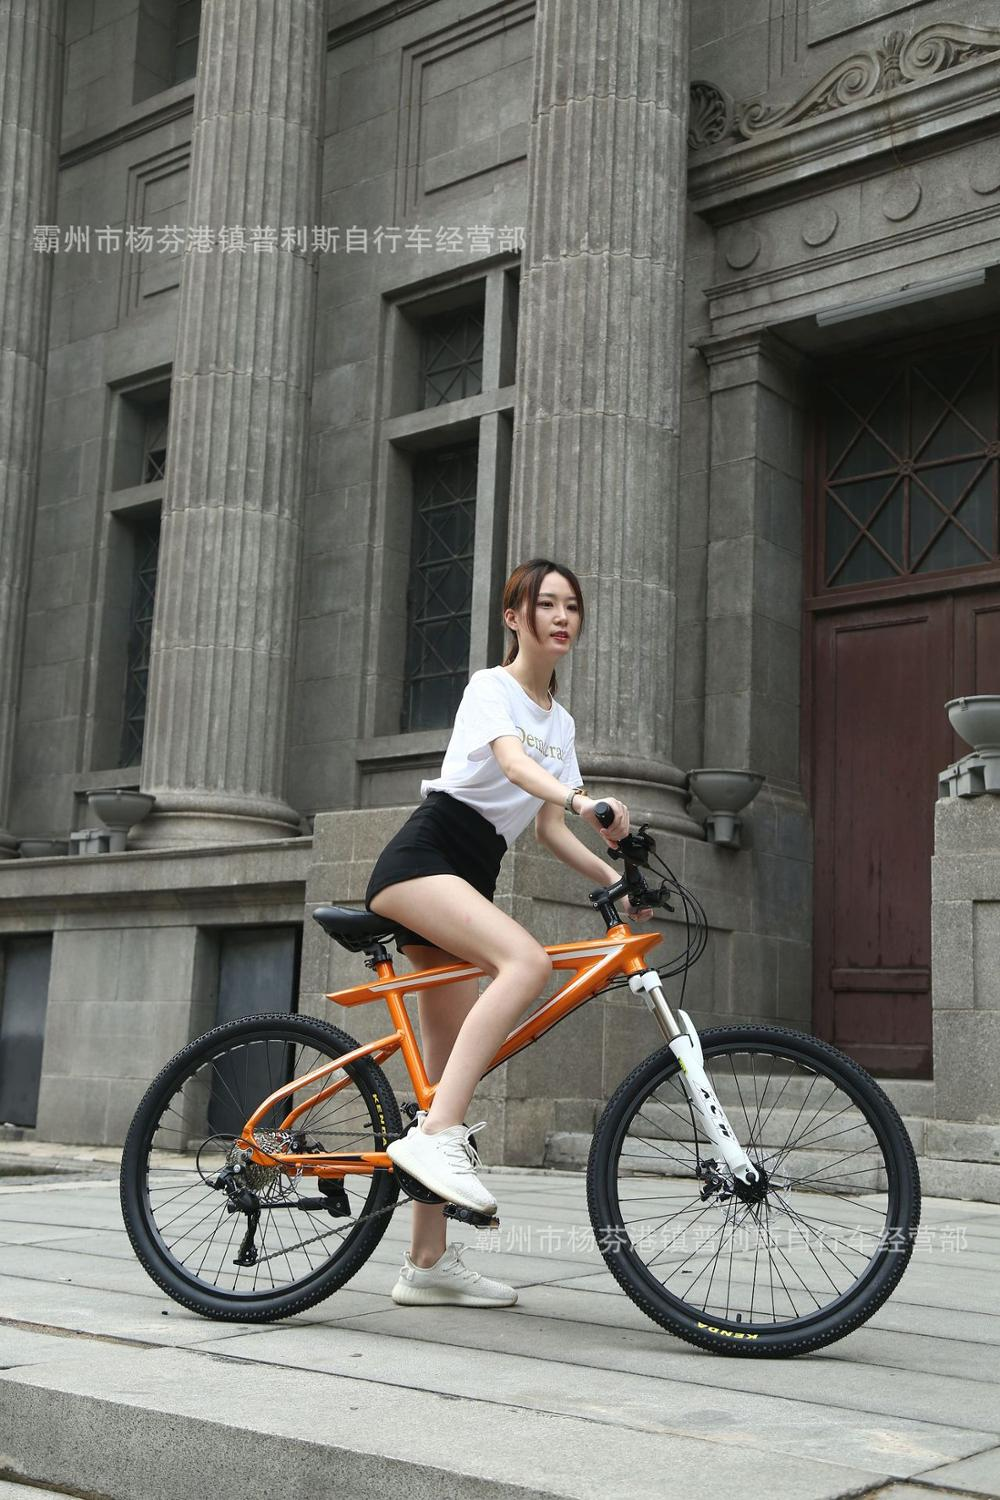 26 Inch Aluminum Alloy Mountain Bike 24 Speed Oil Brake Double Disc Brake Bicycle Factory Direct One Generation